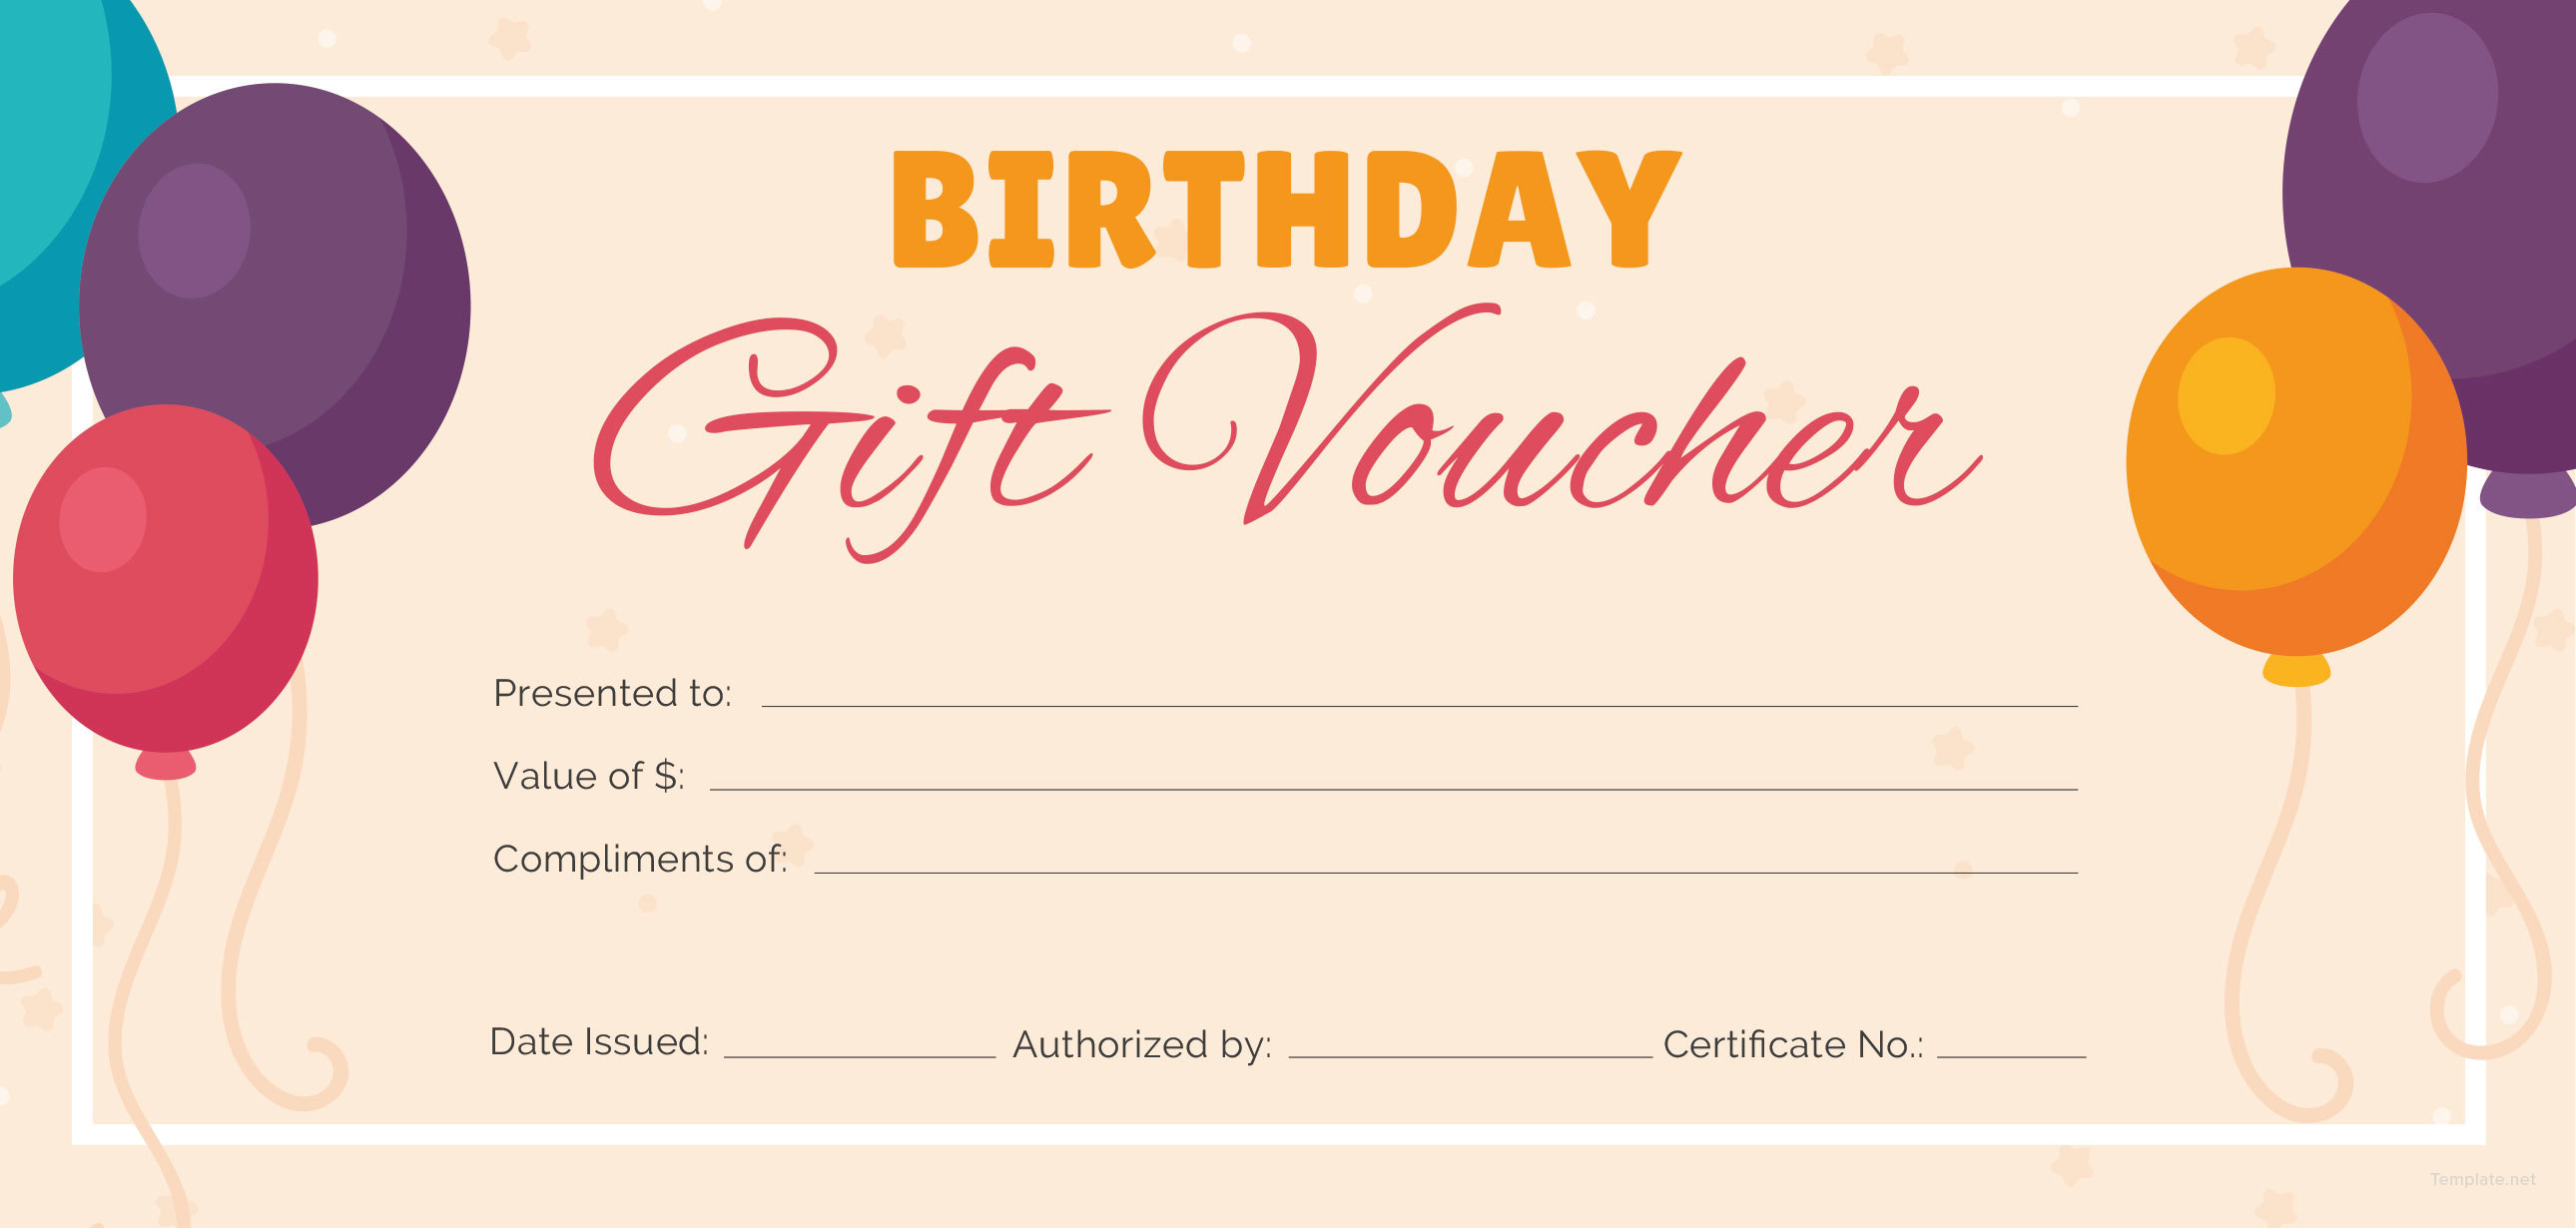 Birthday-Gift-Voucher-printable-Format-Birthday-Gift ...